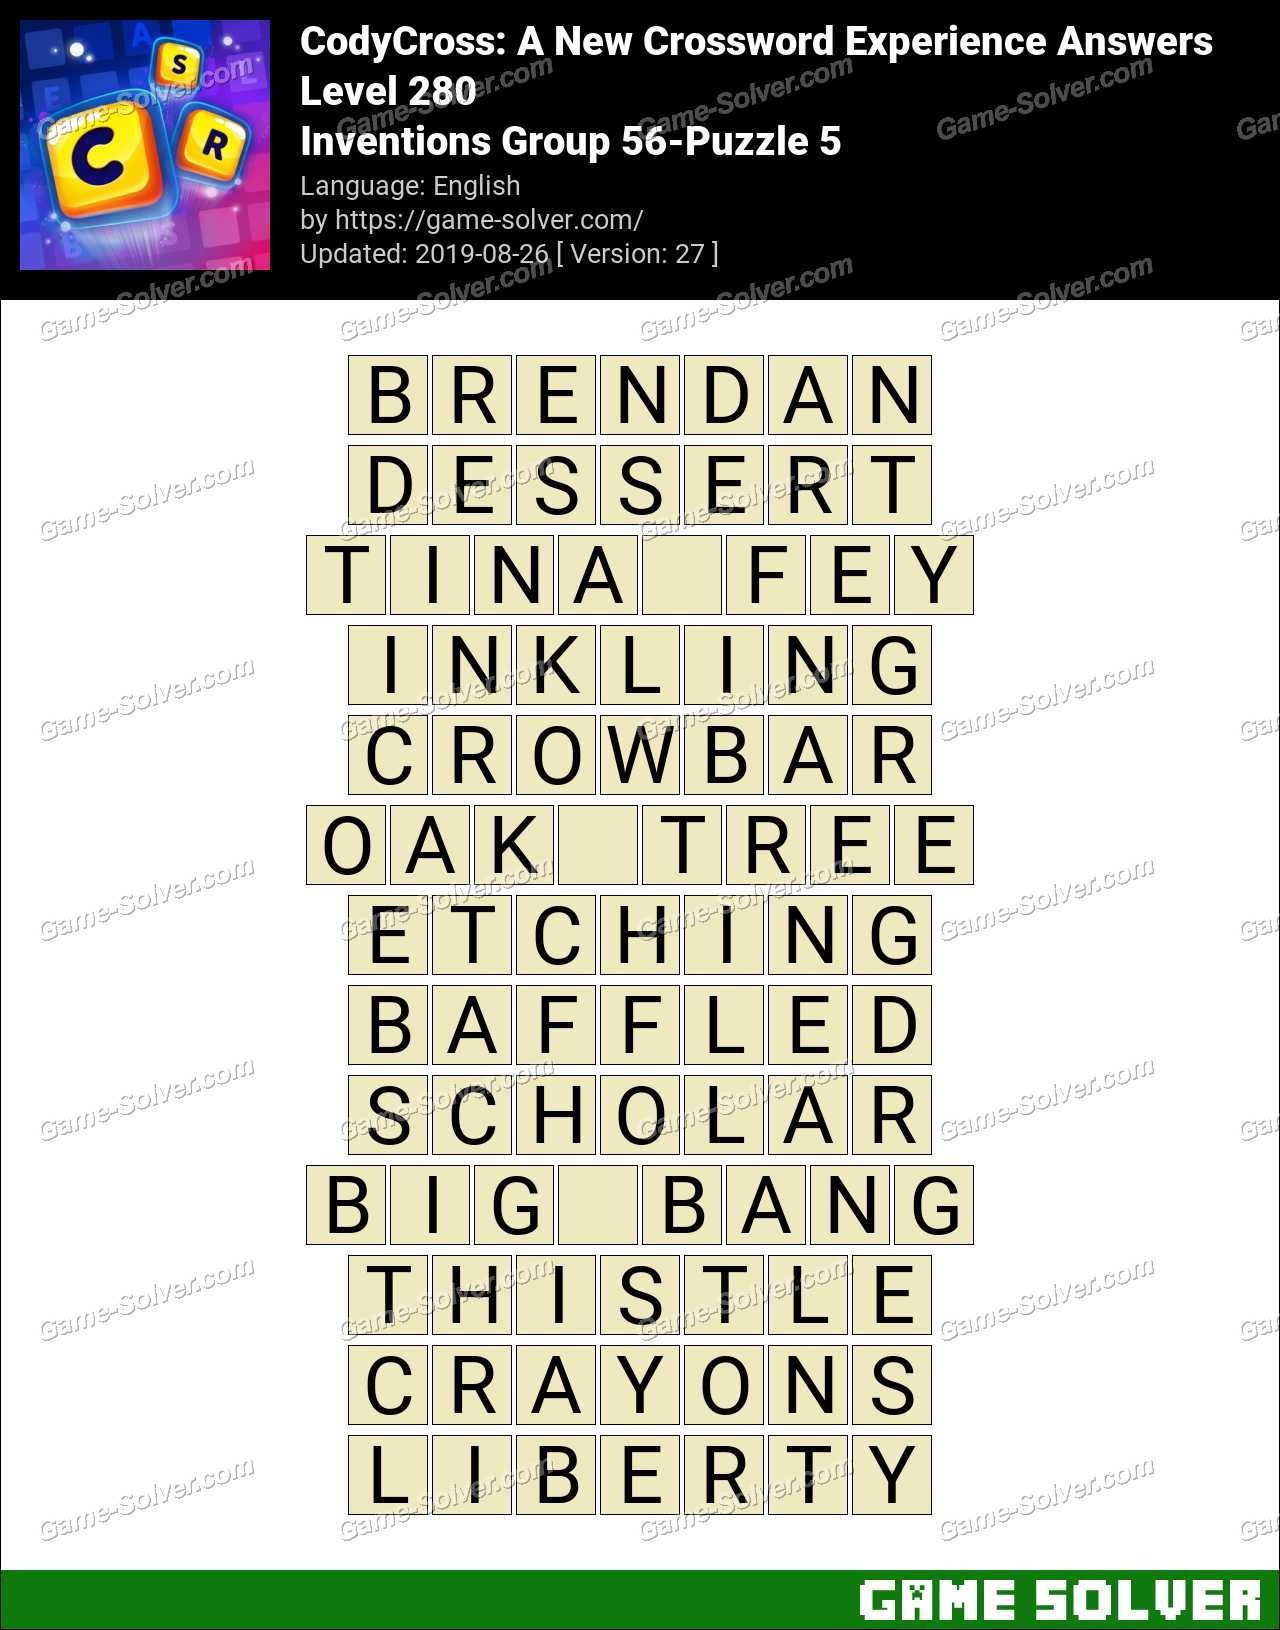 CodyCross Inventions Group 56-Puzzle 5 Answers - Game Solver